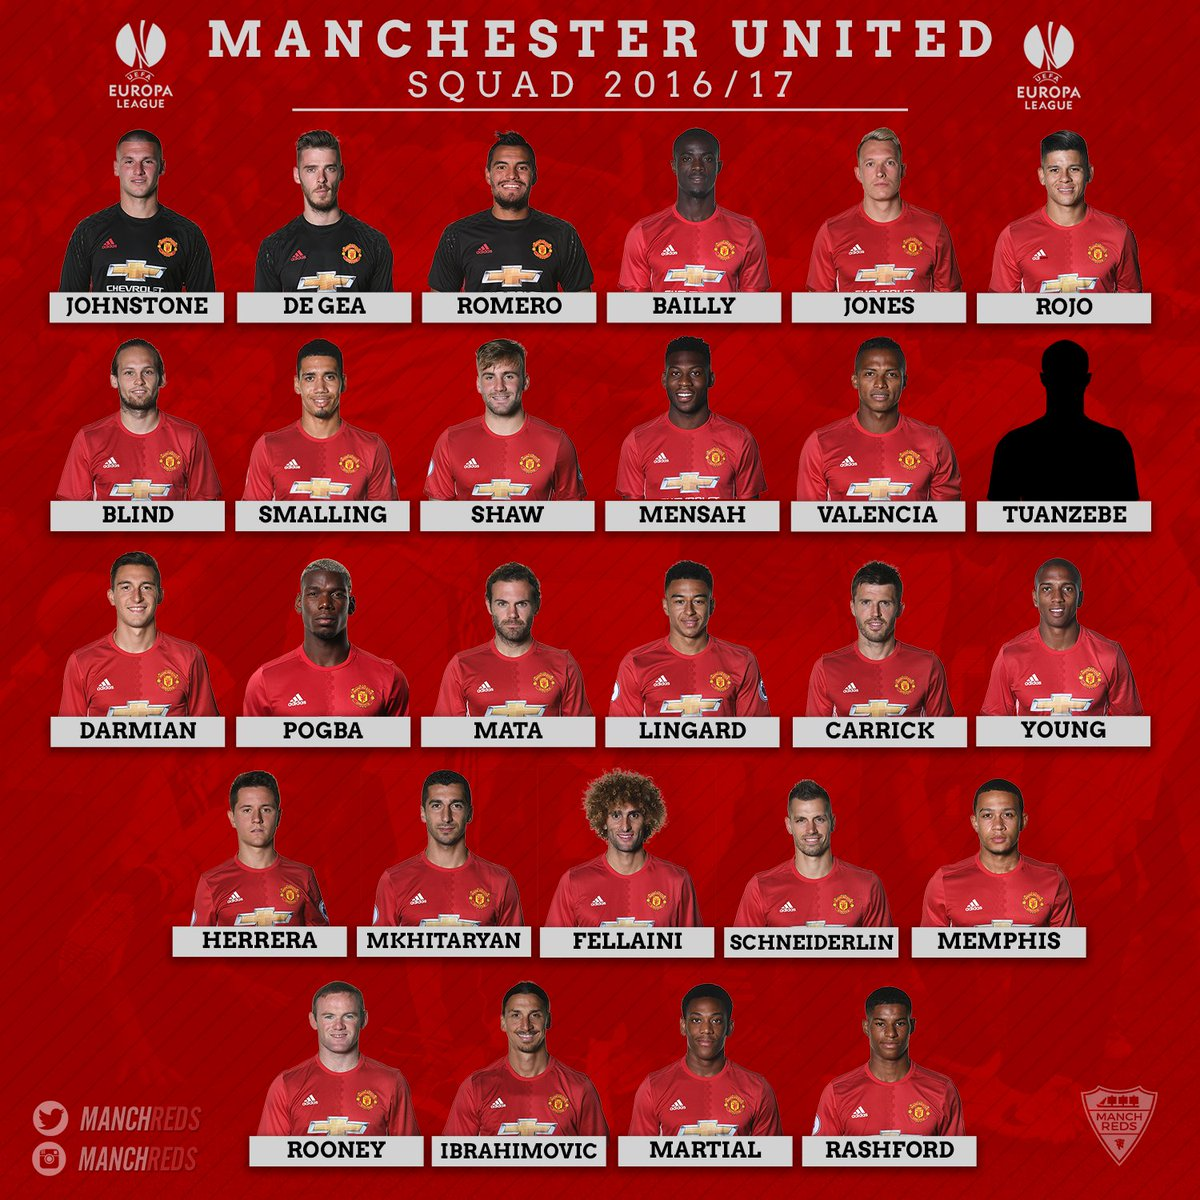 445aea14870 FM17  Manchester United - The Special One Arrives - Good Player ...